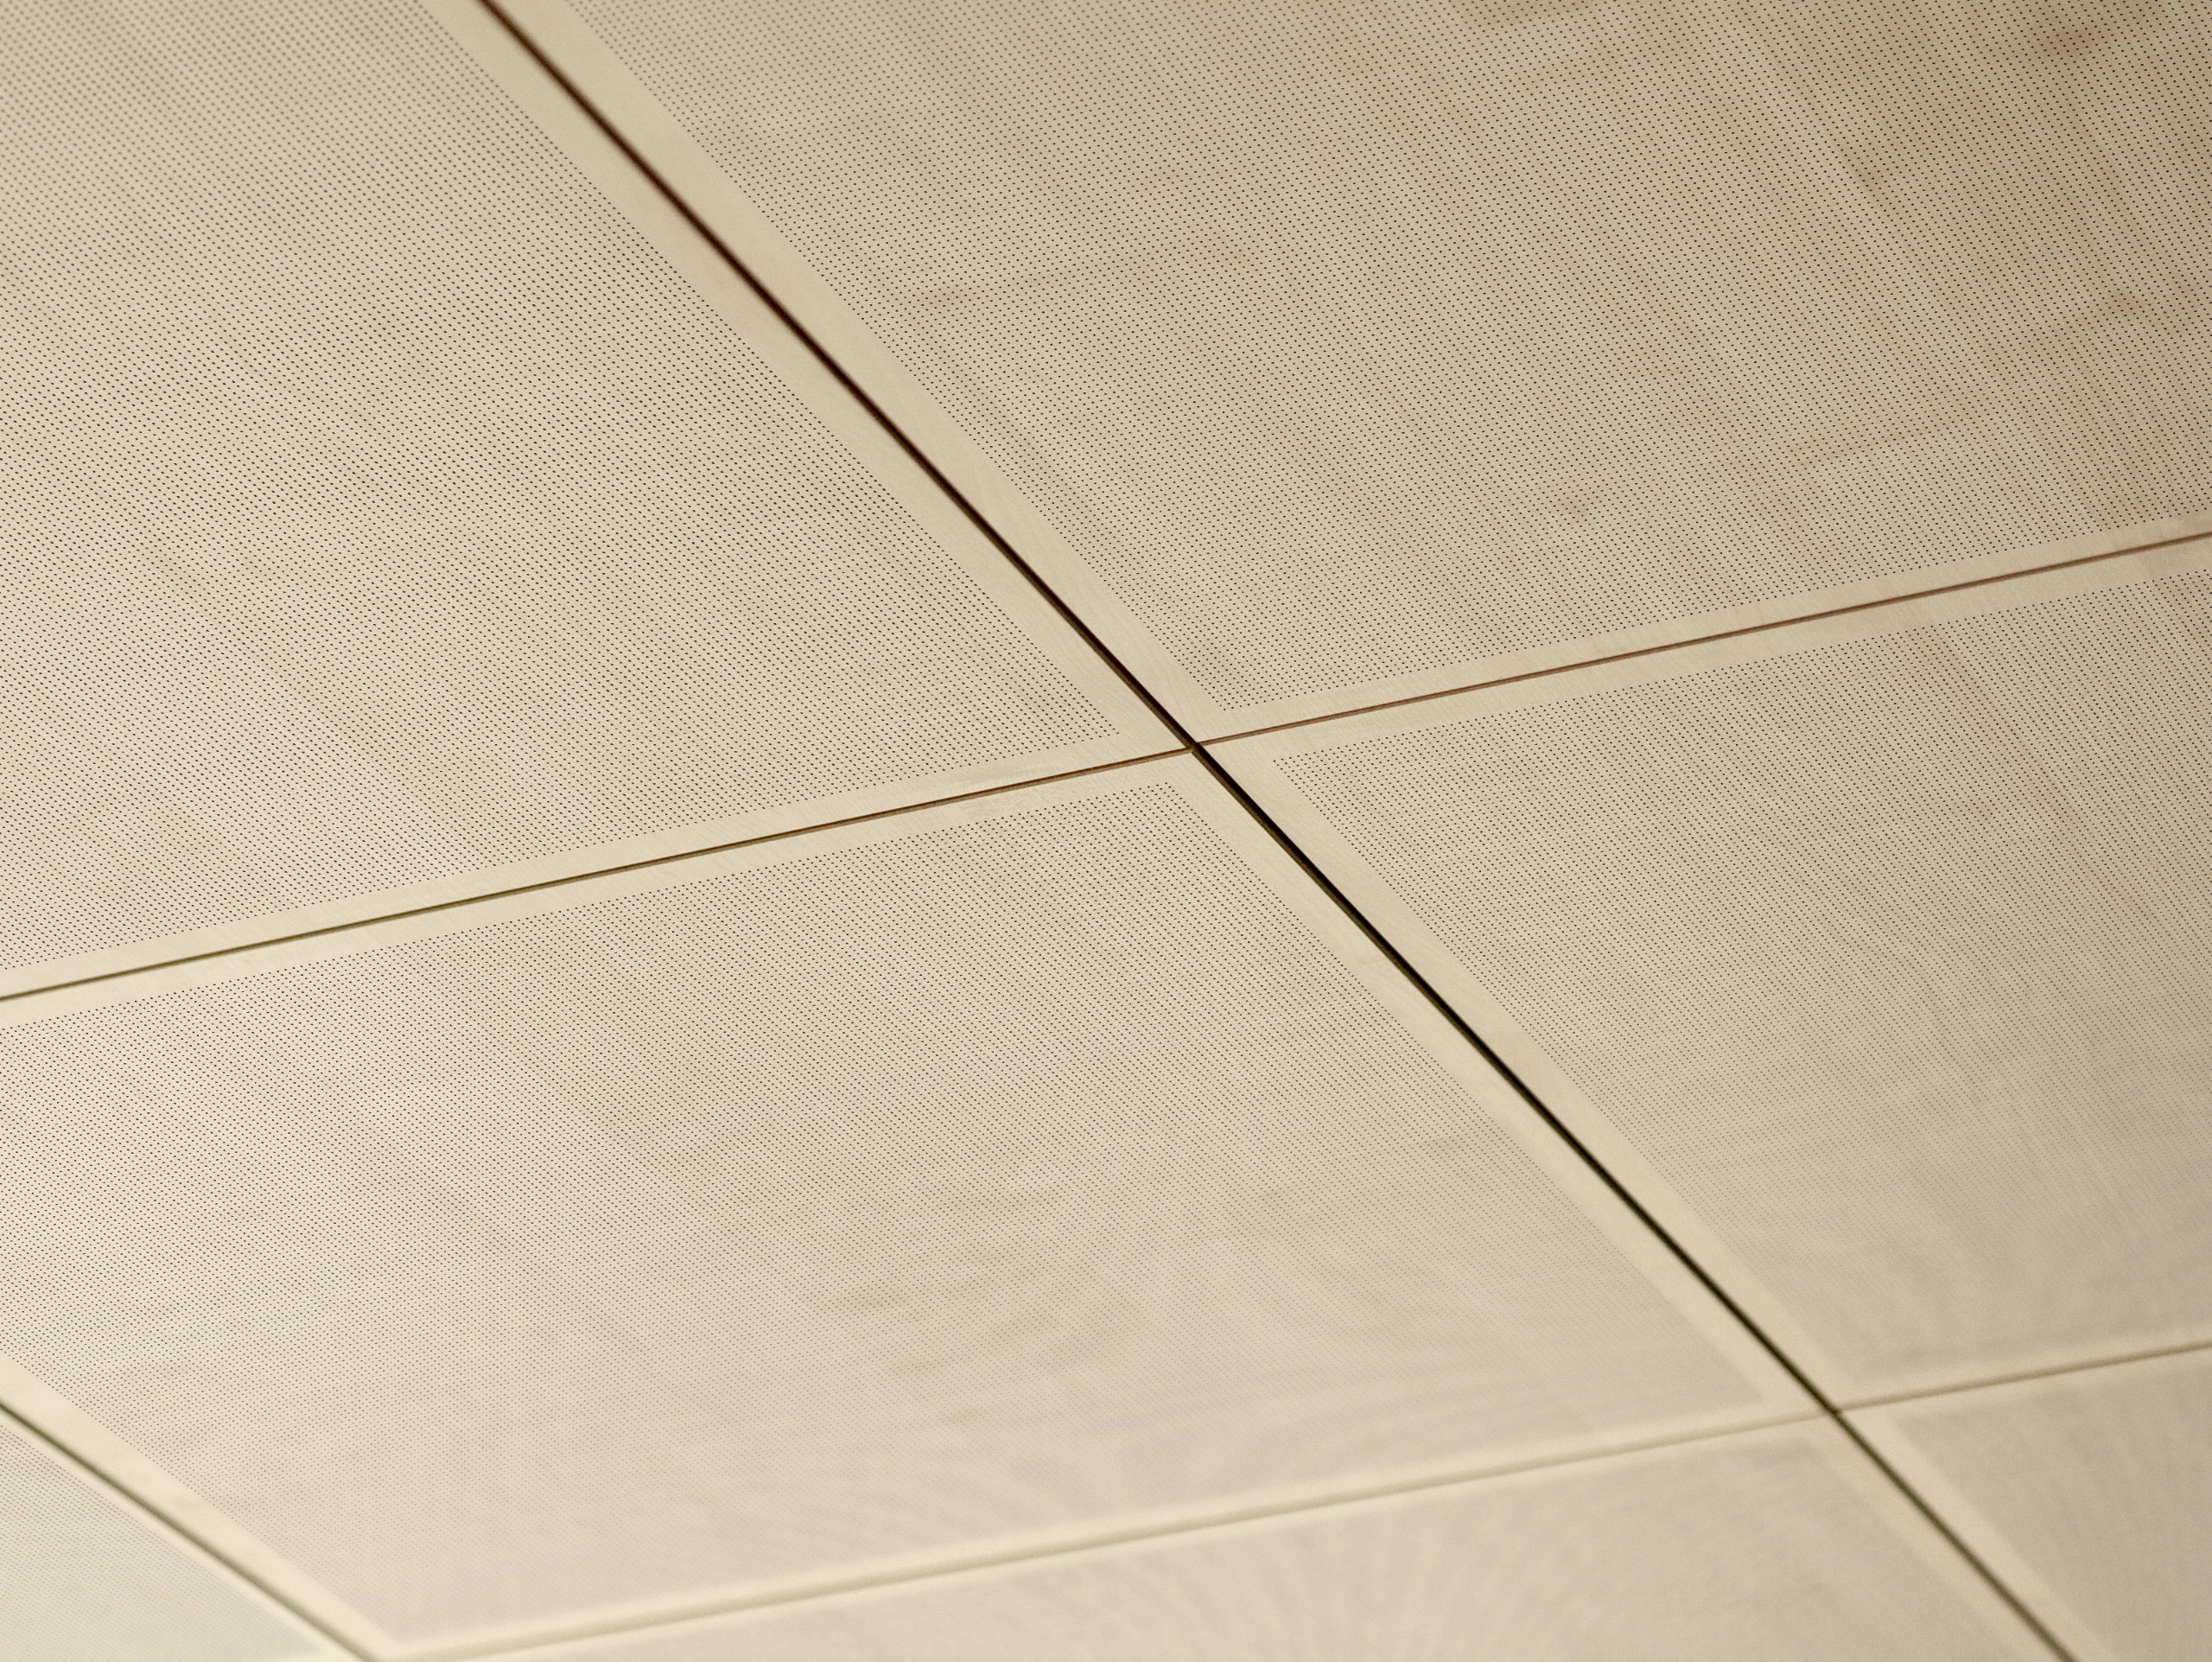 Wood product ceiling tiles archiproducts dailygadgetfo Gallery